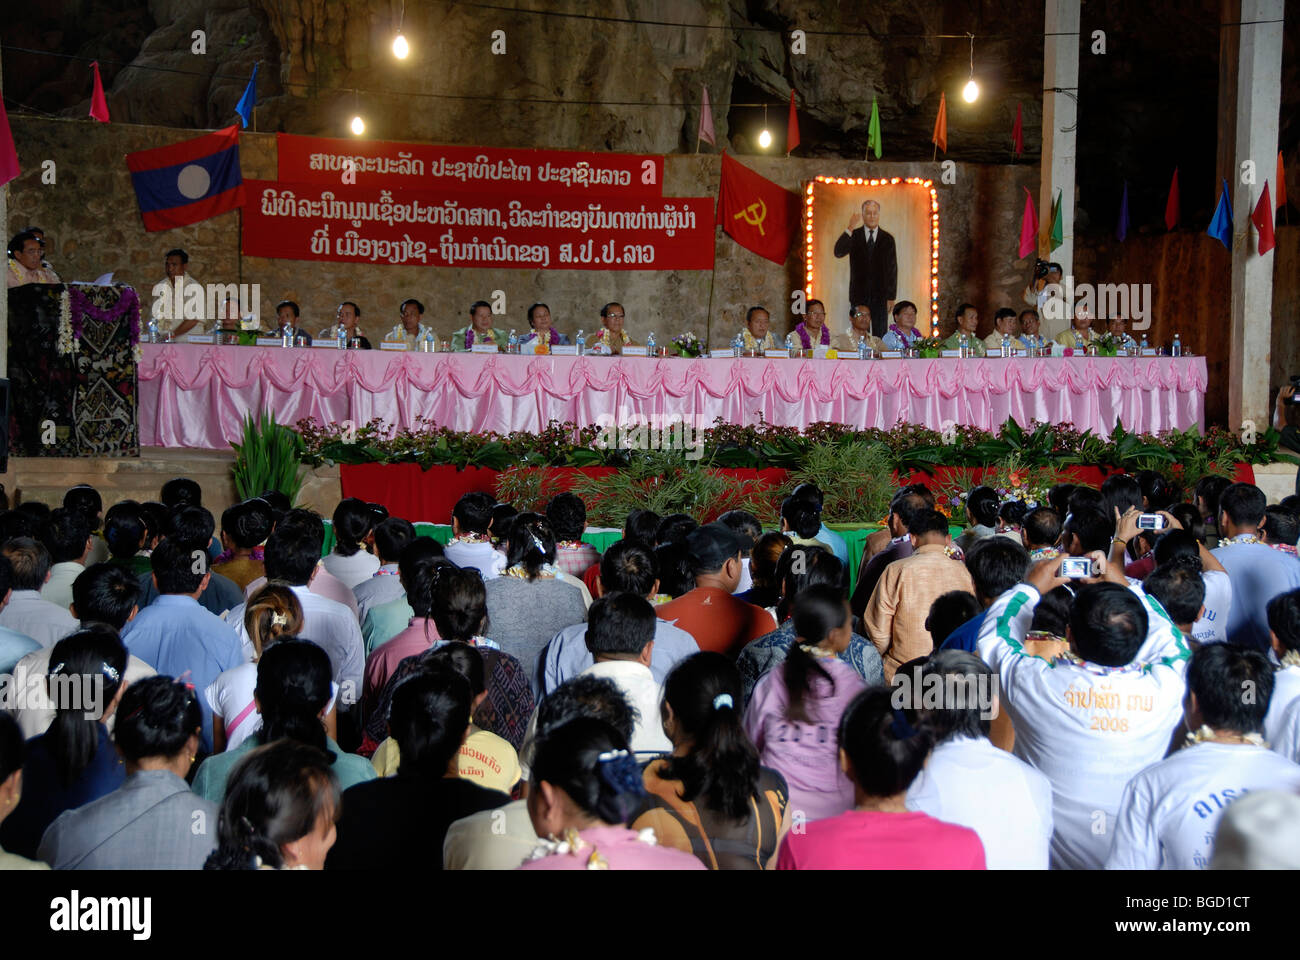 Event of the Communist Party in the Pathet Lao cave, Tham Sang Lot Elephant Cave, a long table with many delegates - Stock Image